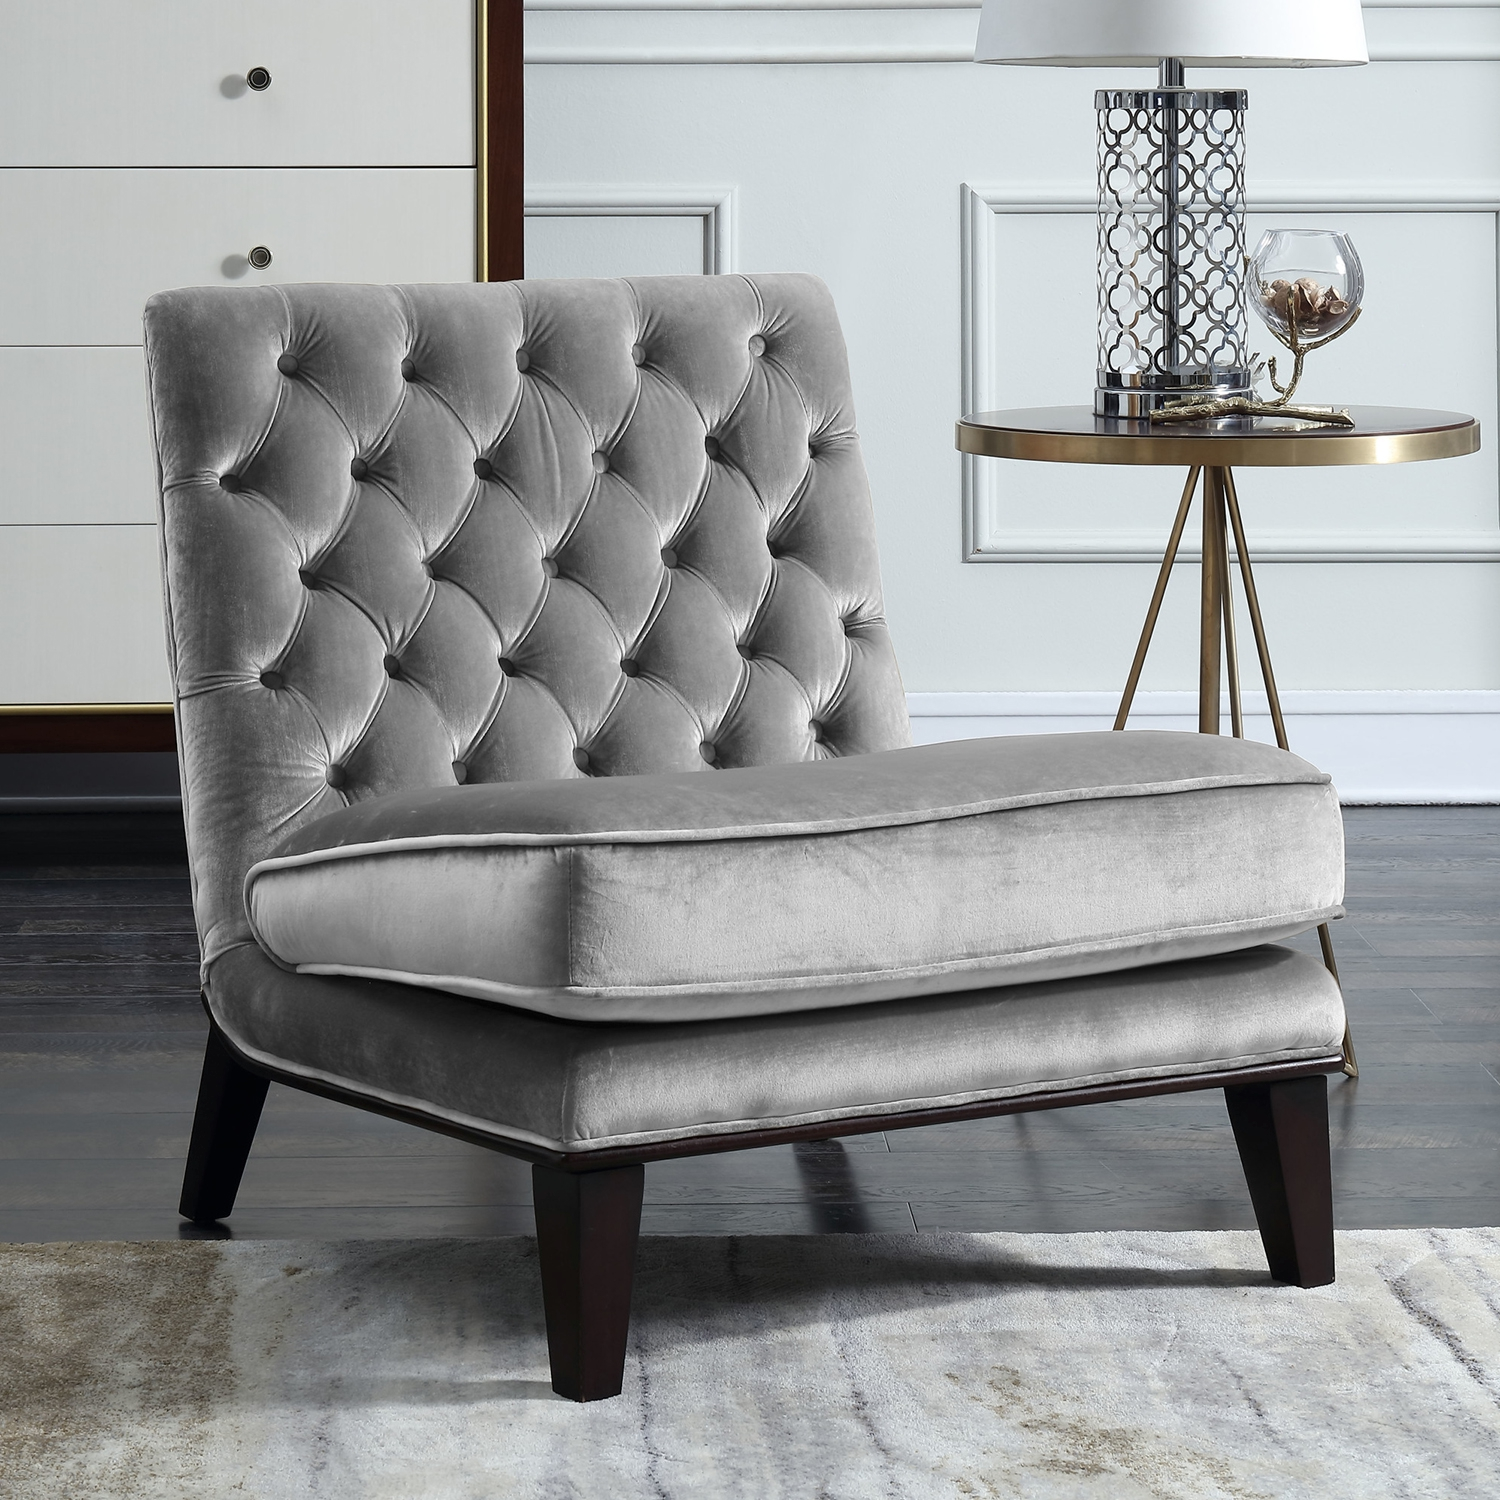 grey velvet slipper chair rv captain chairs for sale chic home fac2694 dr achilles accent in tufted